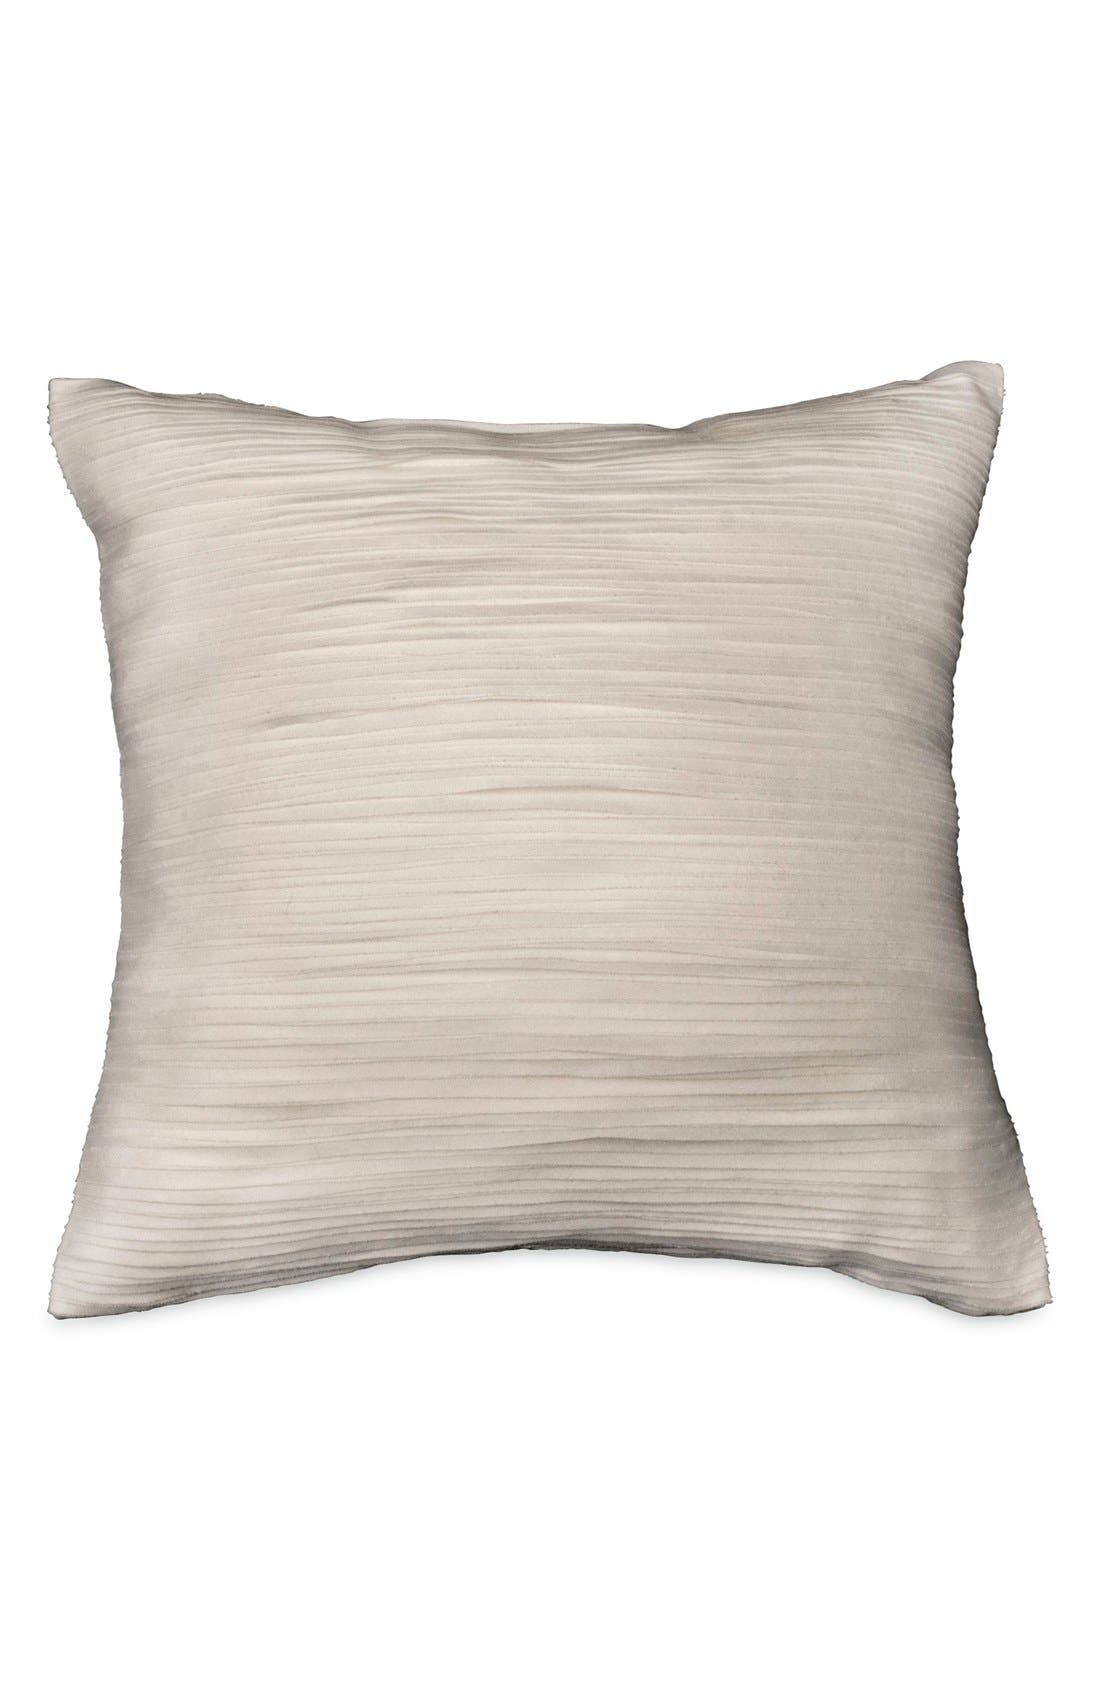 Donna Karan Collection 'Silk Essentials' Pillow,                             Main thumbnail 1, color,                             Platinum